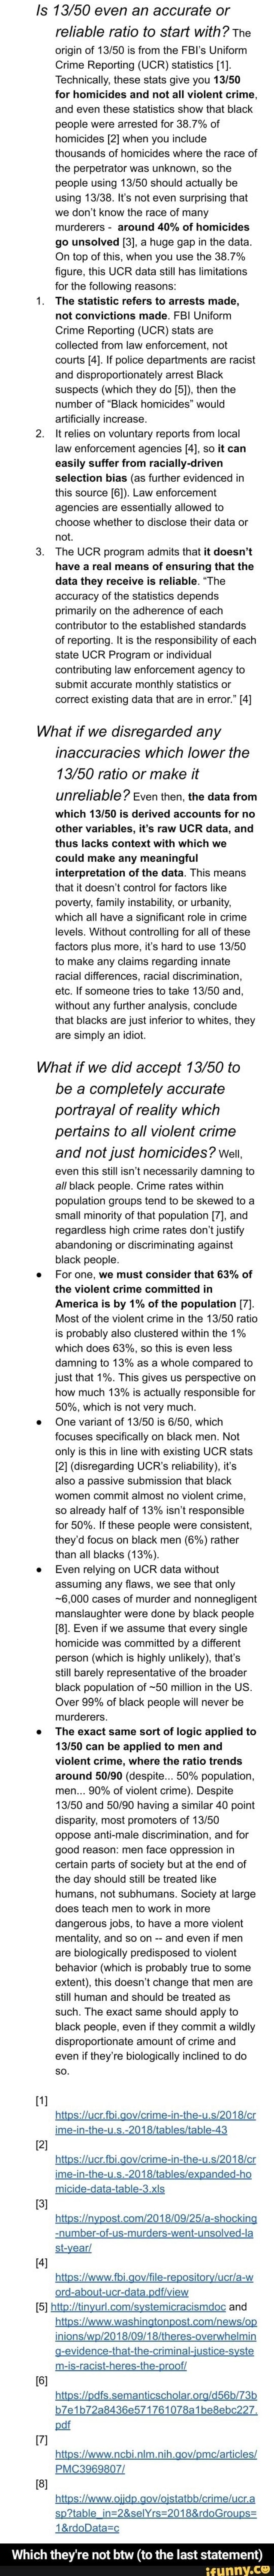 Is even an accurate or reliable ratio to start with The origin of is from the FBI's Uniform Crime Reporting UCR statistics 1. Technically, these stats give you for homicides and not all violent crime, and even these statistics show that black people were arrested for 38.7% of homicides 2 when you include thousands of homicides where the race of the perpetrator was unknown, so the people using should actually be using It's not even surprising that we do not know the race of many murderers around 40% of homicides go unsolved 3, a huge gap in the data. On top of this, when you use the 38.7% figure, this UCR data still has limitations for the following reasons 1. The statistic refers to arrests made, not convictions made. FBI Uniform Crime Reporting UCR stats are collected from law enforcem